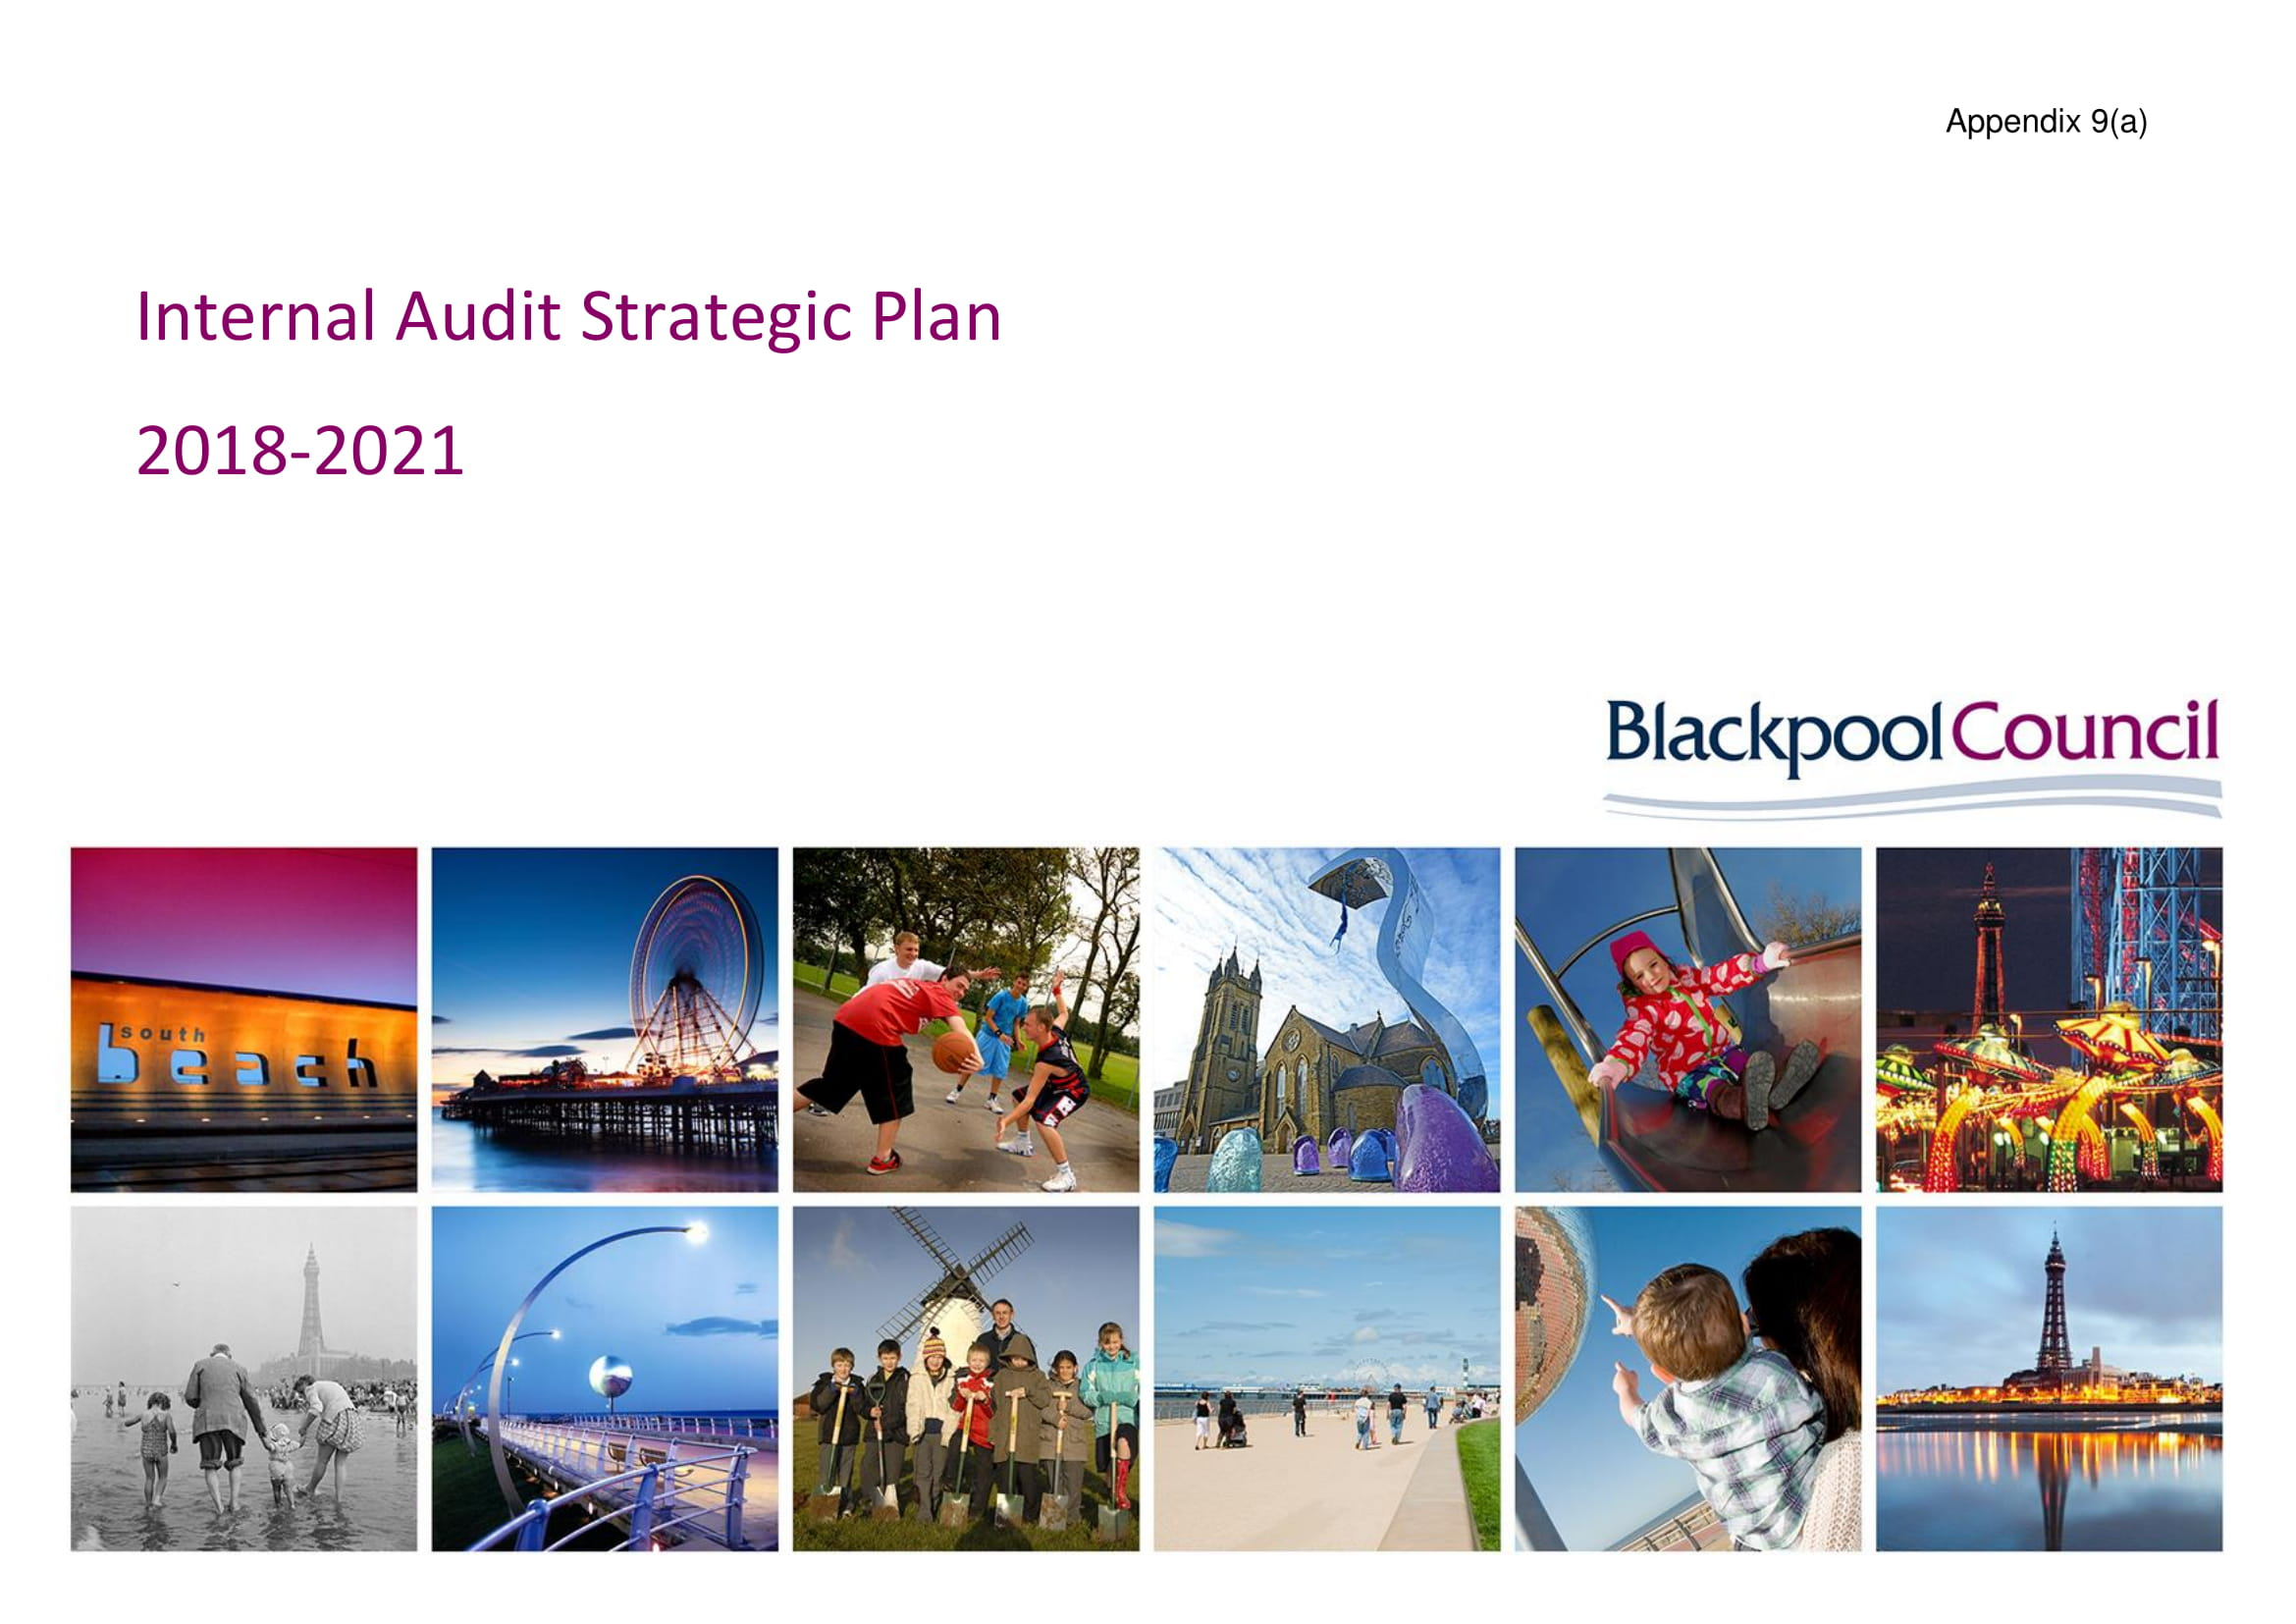 blackpool council internal audit strategic plan example